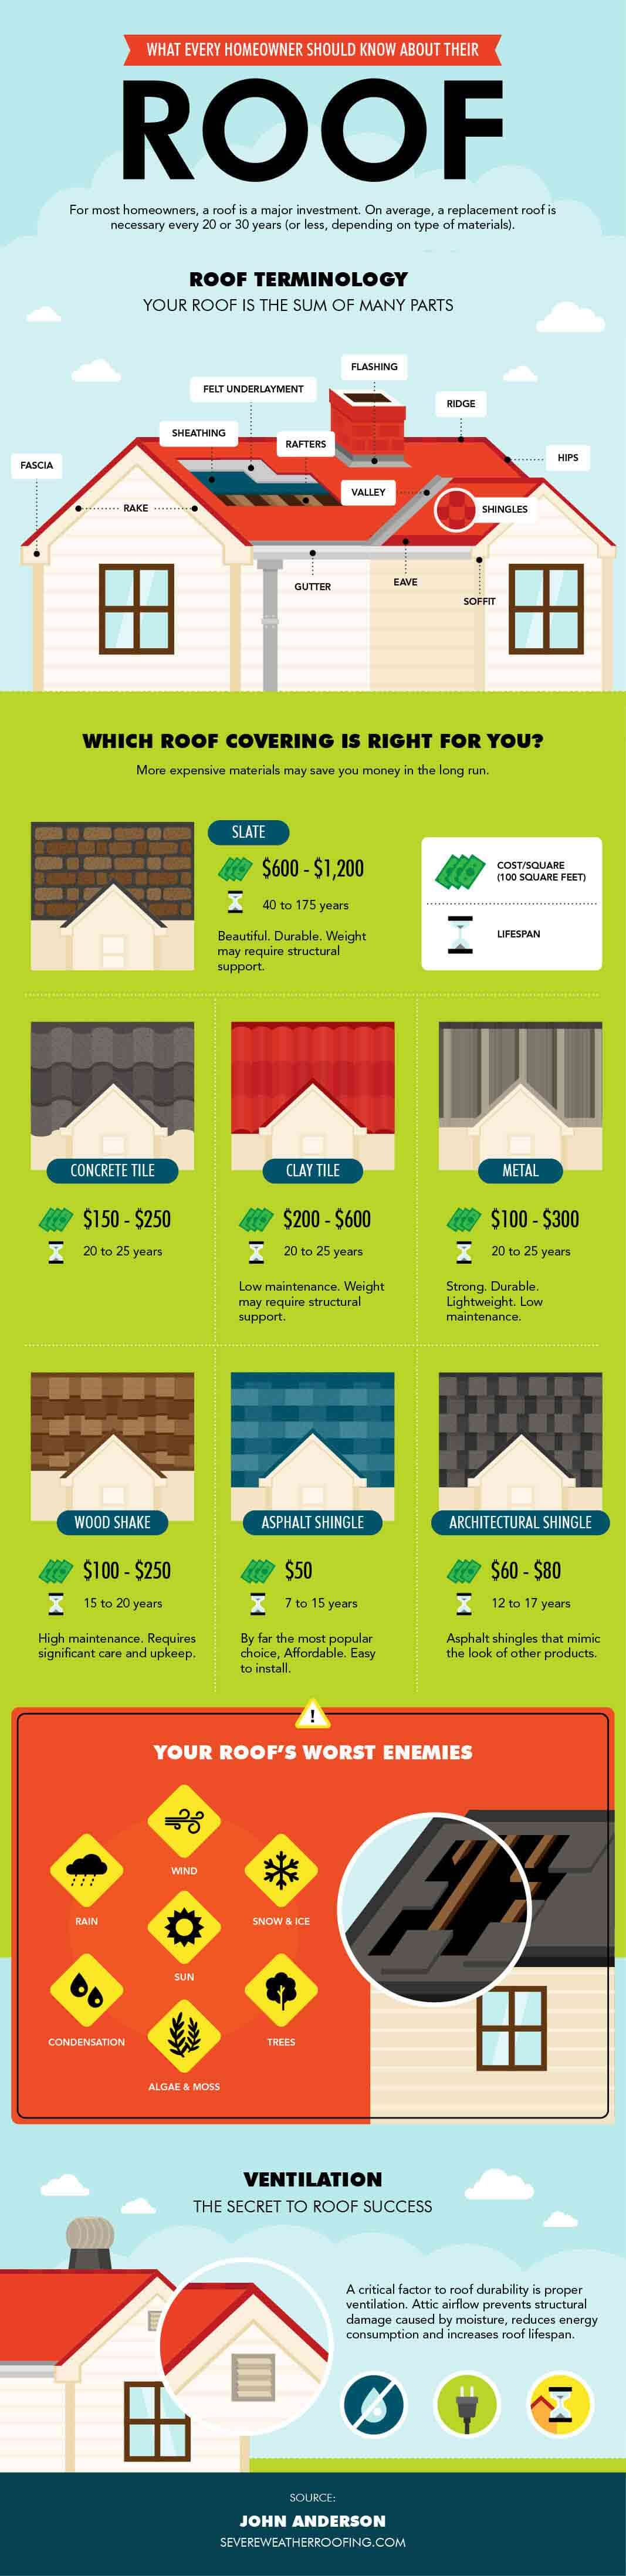 , Choosing the Right Roof for Your Home